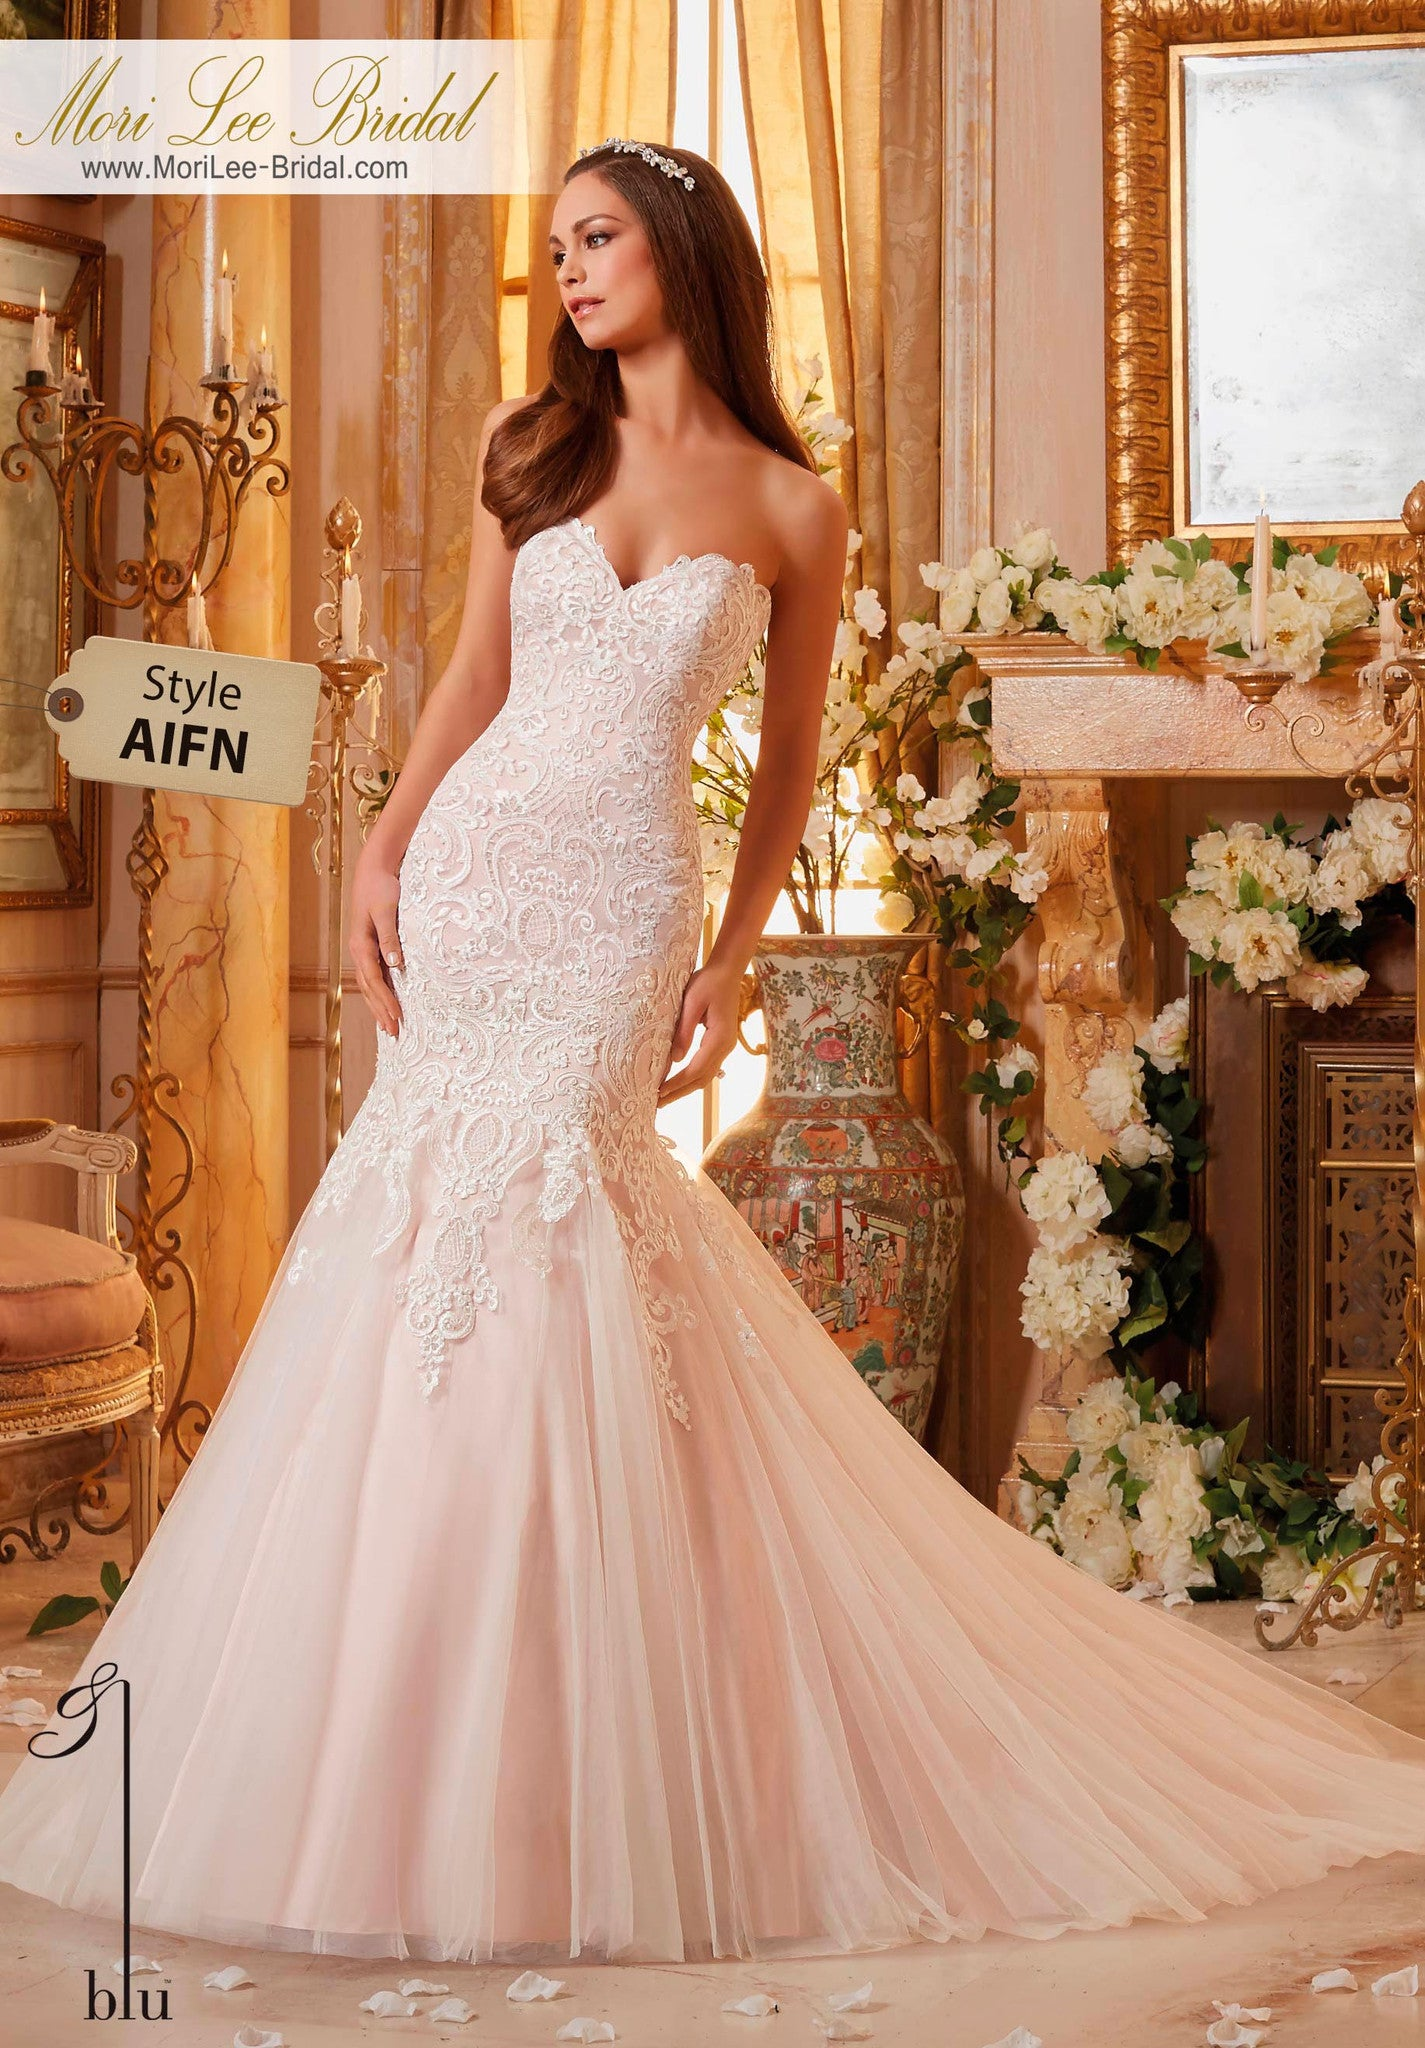 AIFN - Mori Lee Bridal